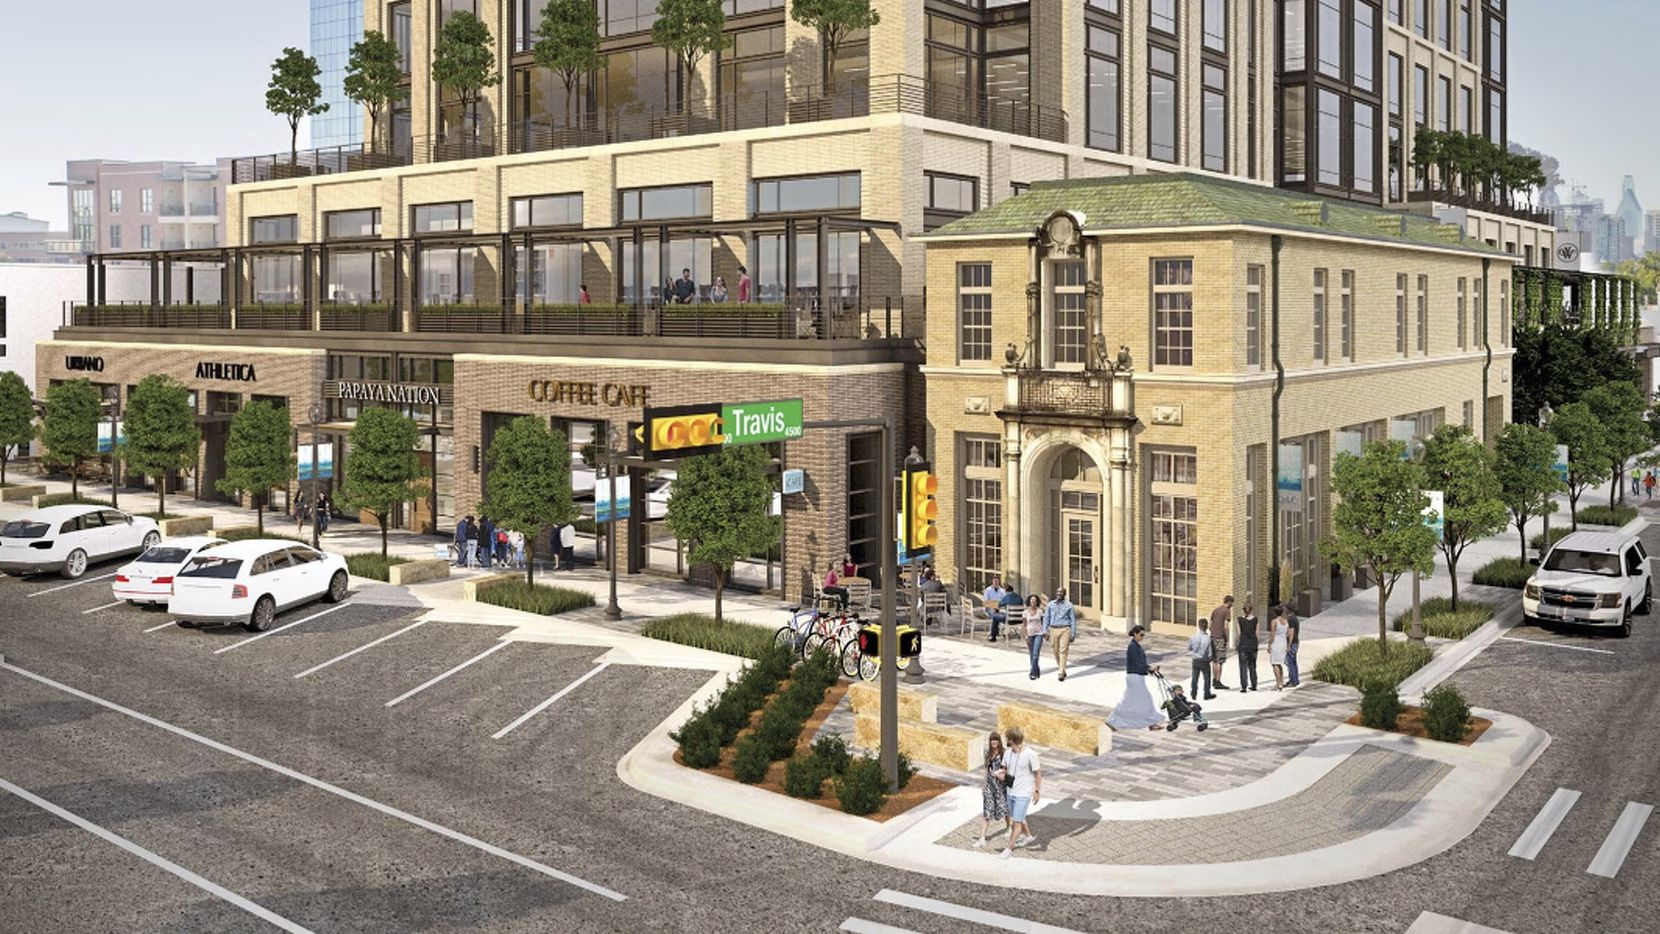 The new retail and office high-rise will replace the Weir's Furniture store on Knox Street.